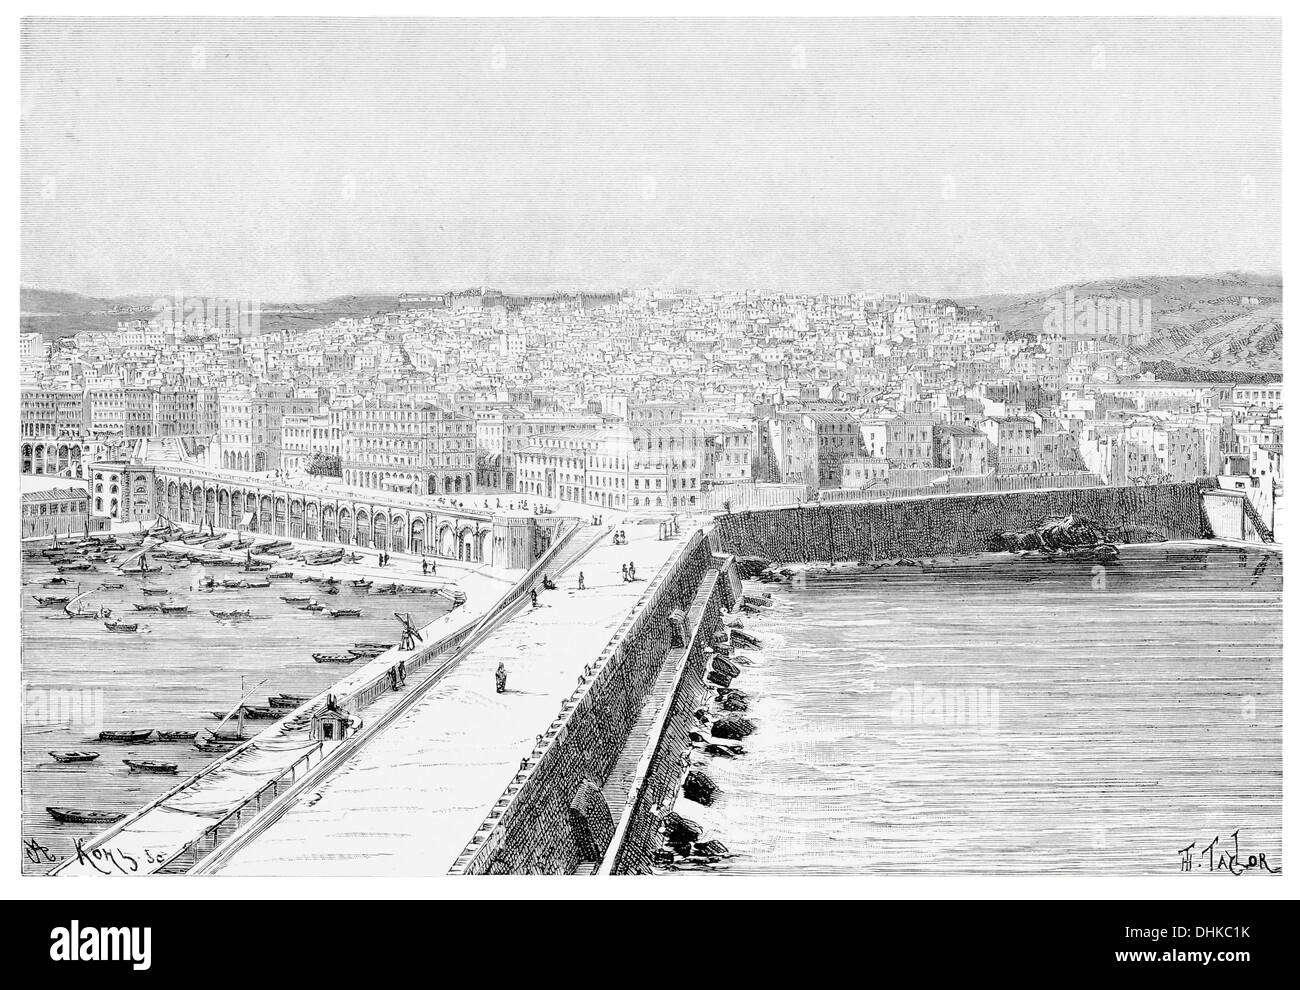 1888 general view of algiers taken from the kheir el-din pier - Stock Image